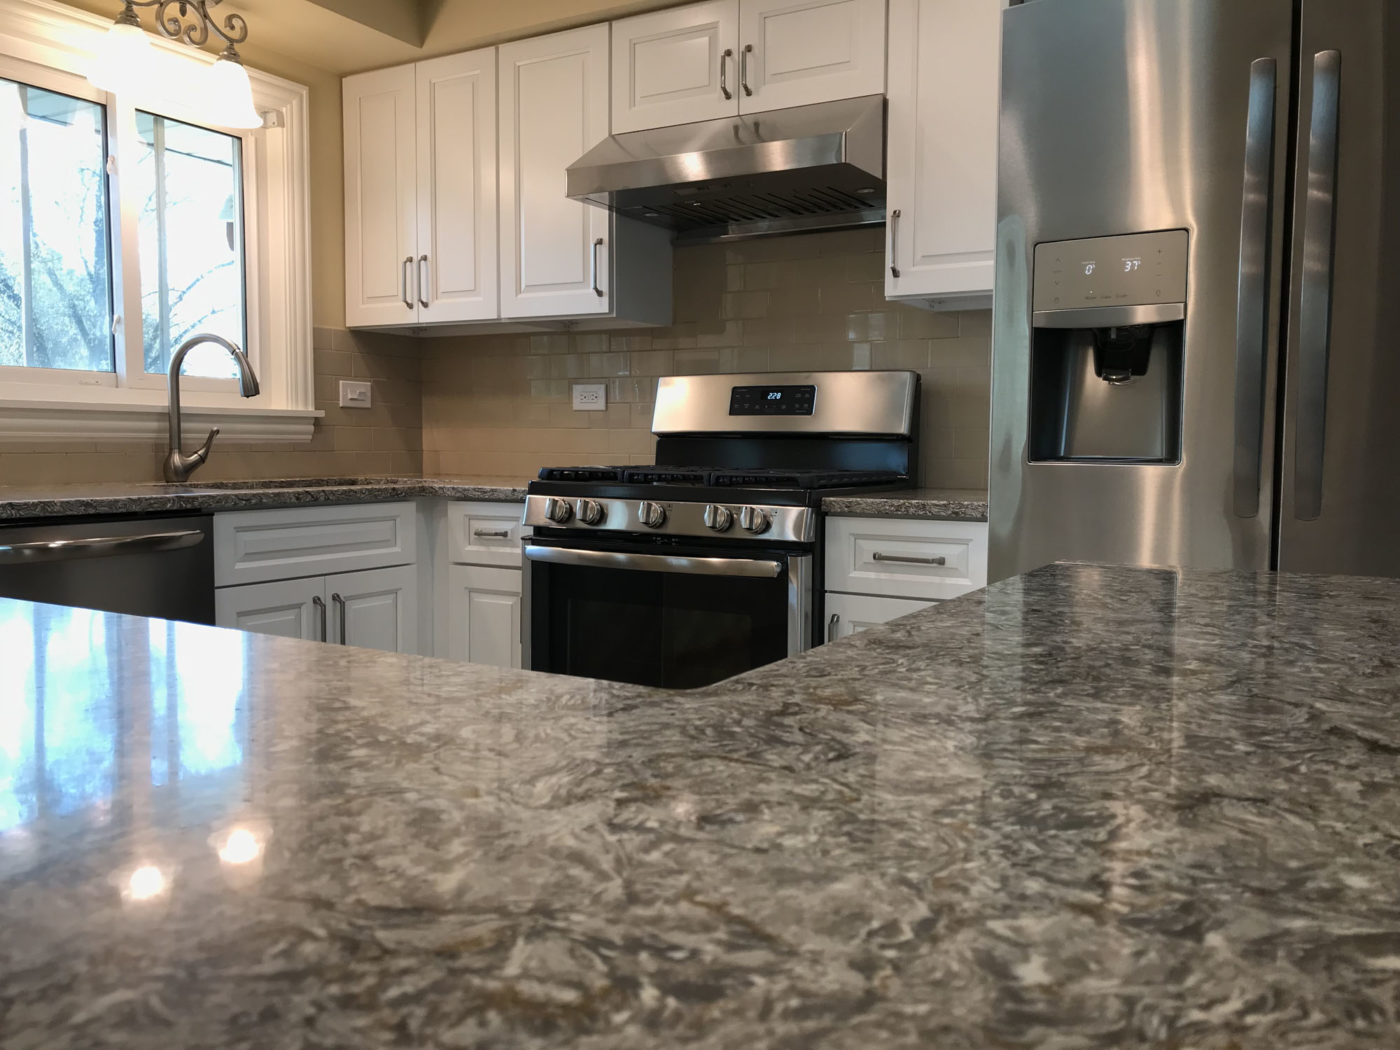 Kitchen Remodeling In Schaumburg Contractor In Schaumburg